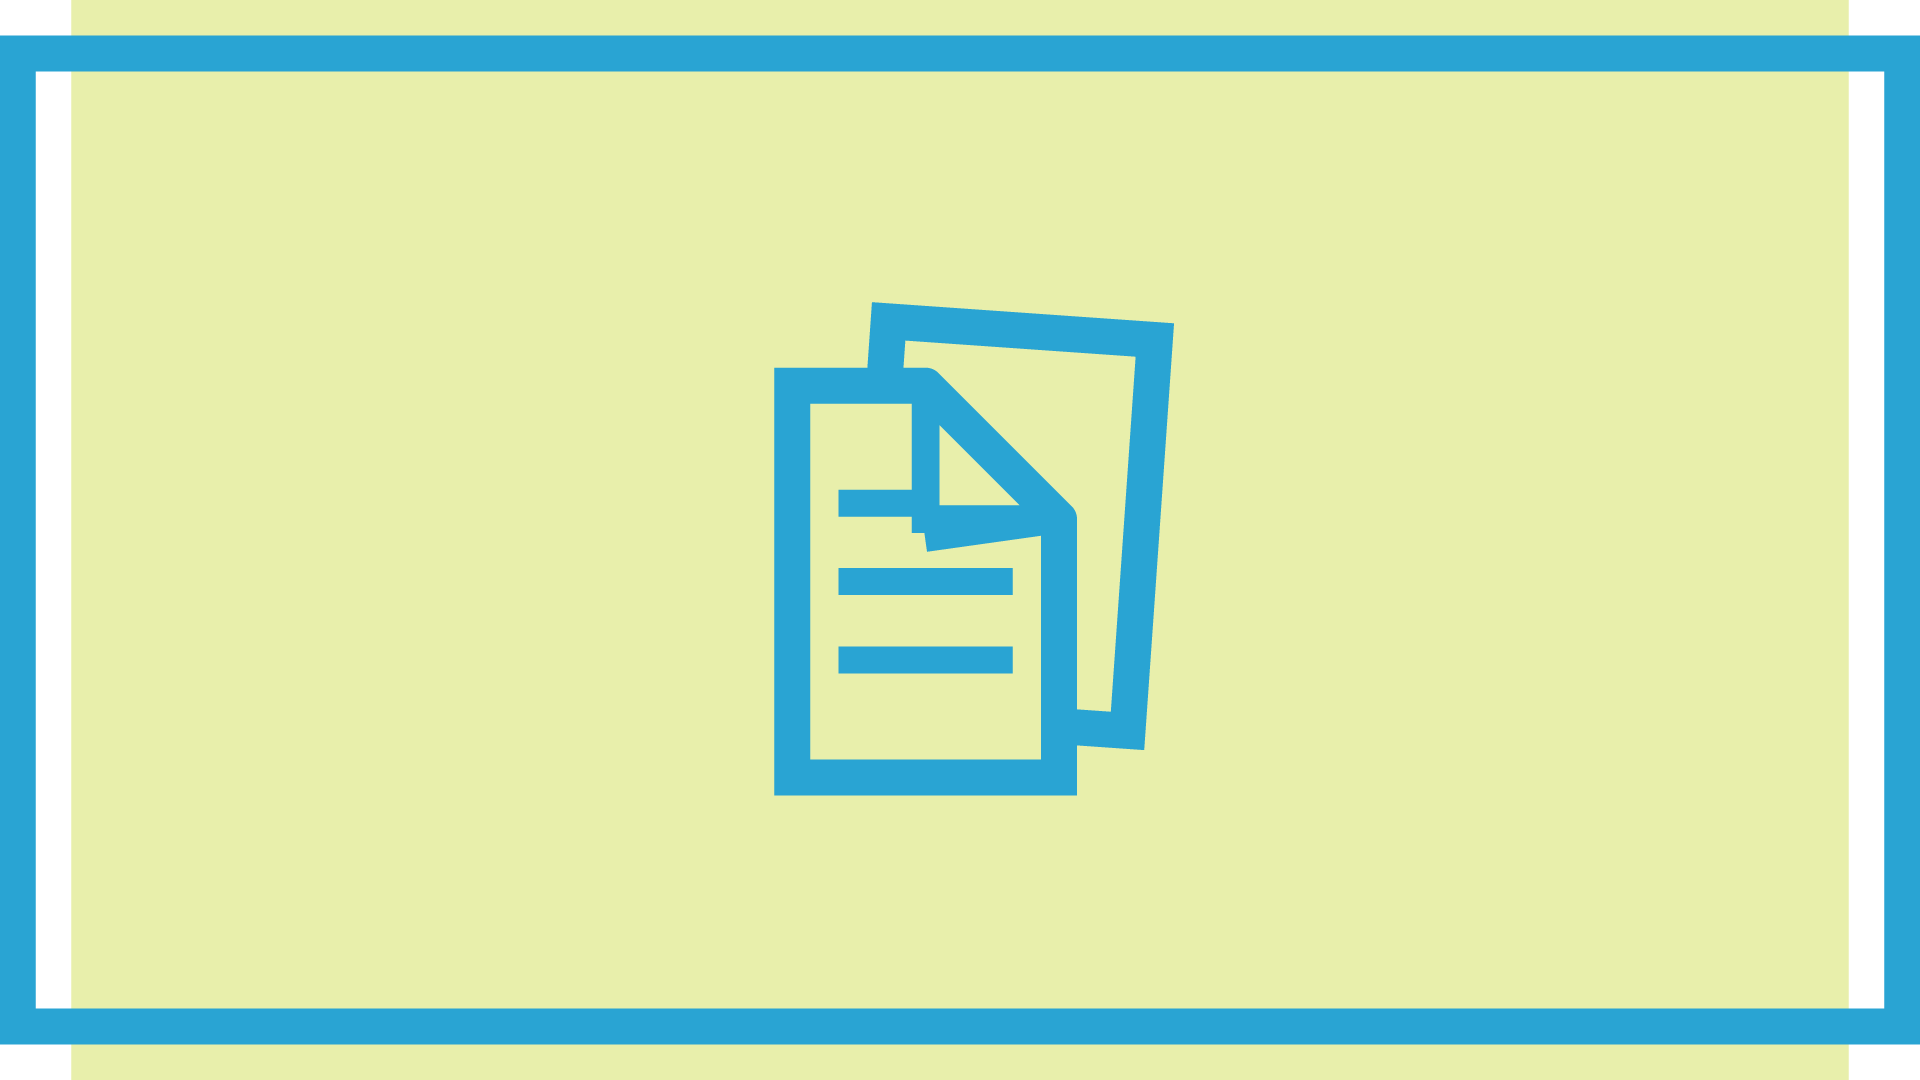 Assignment papers in blue on a pale green/yellow background.